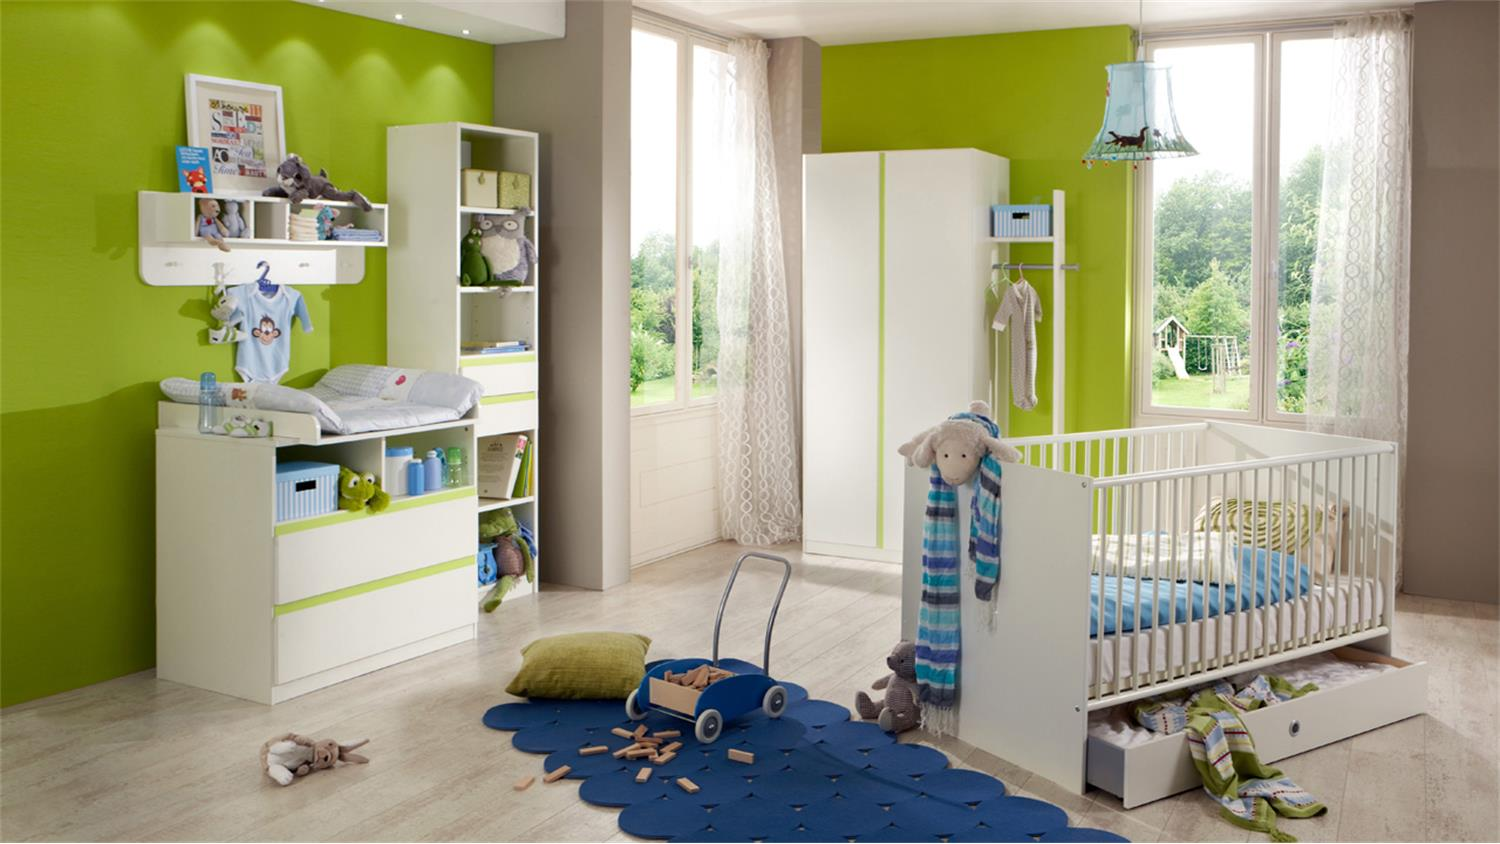 kleiderschrank kinderzimmer bibi 2 t rig wei und apfelgr n. Black Bedroom Furniture Sets. Home Design Ideas